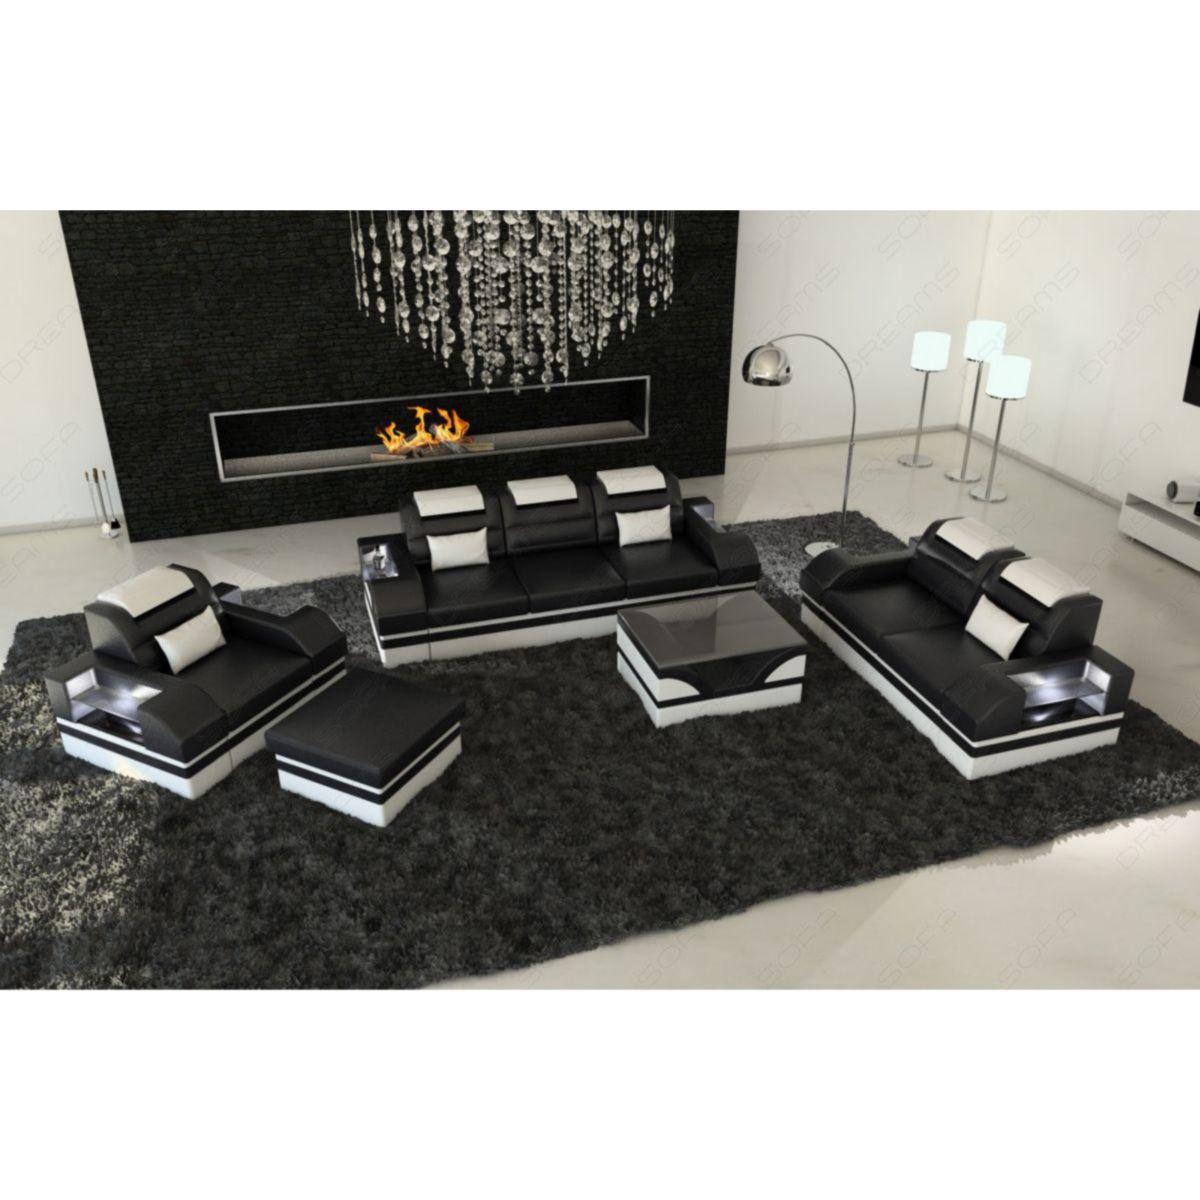 Sofa Dreams Leder Couchgarnitur Parma